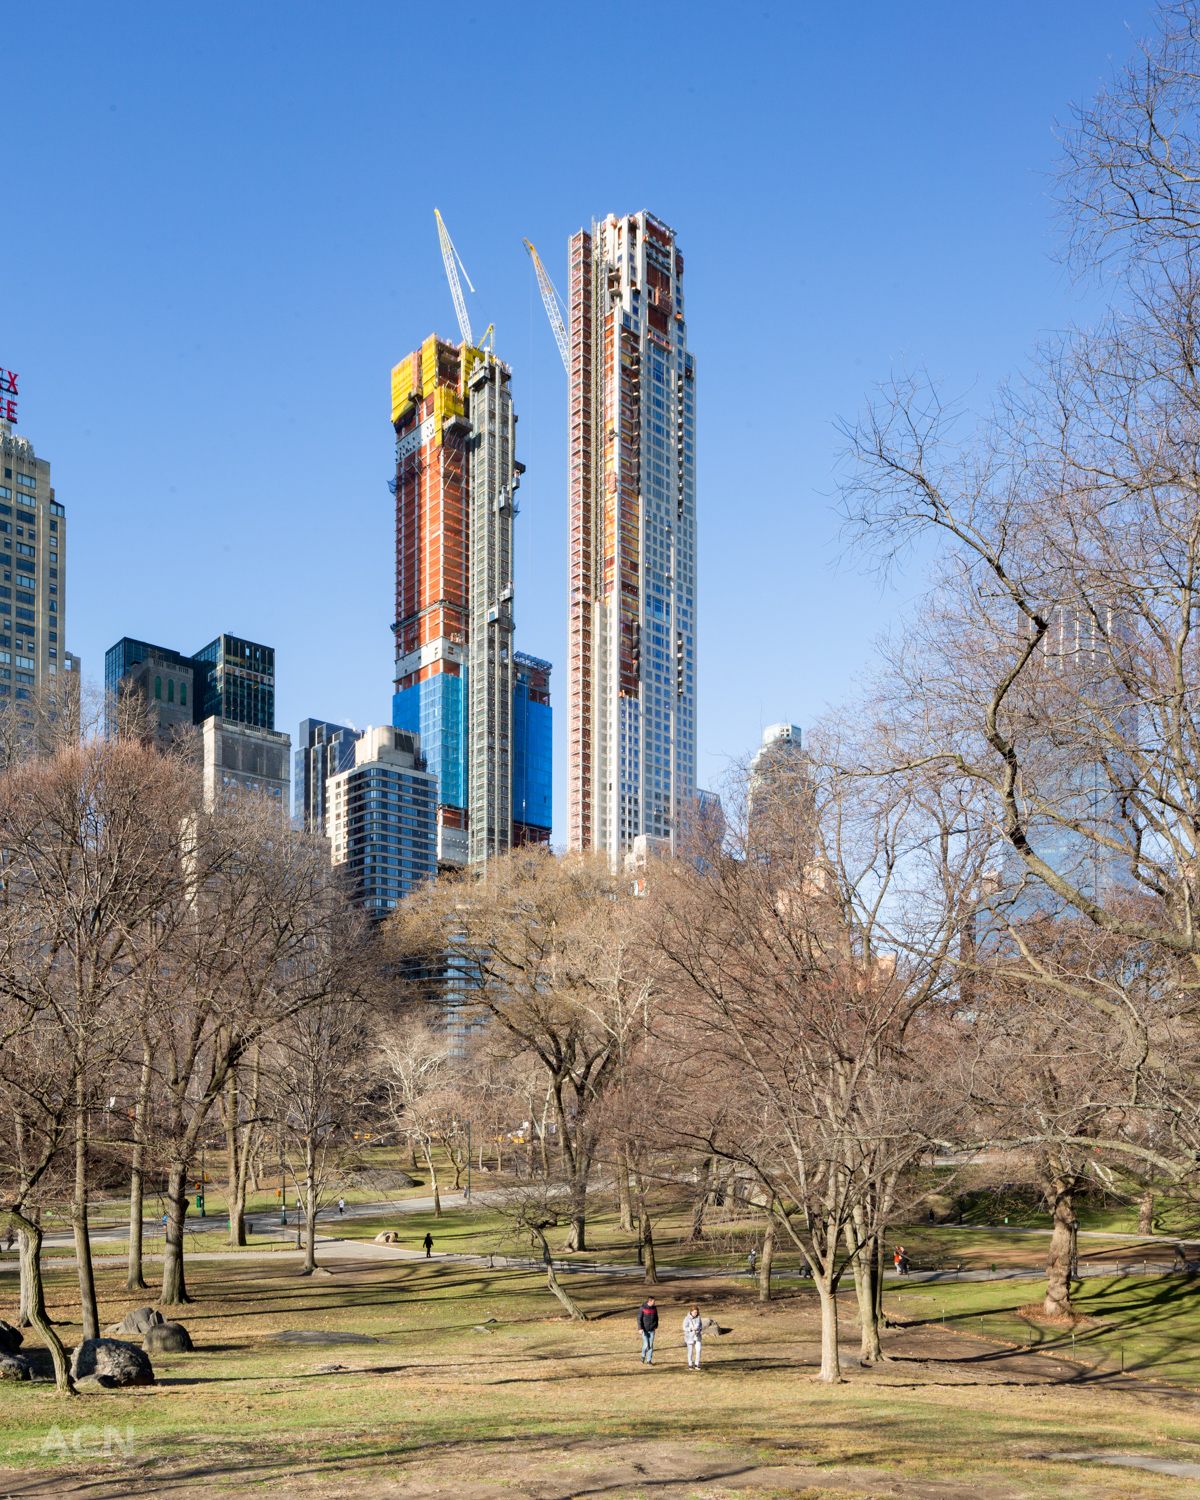 Cetral Park: 220 Central Park South Begins Losing Prominence As